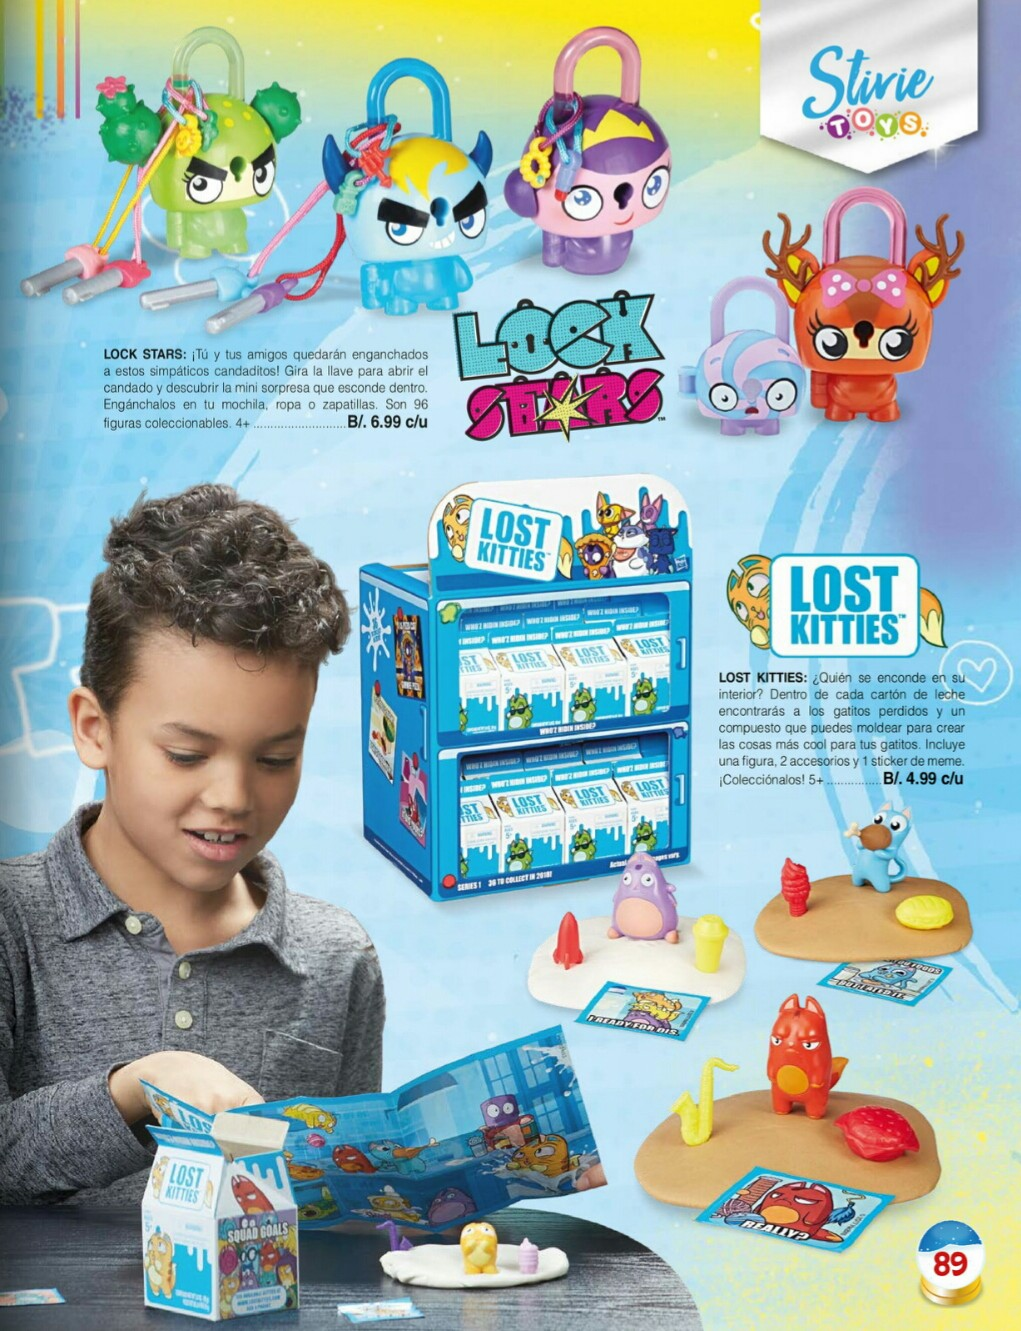 Catalogo juguetes Stivie toys 2018 p89